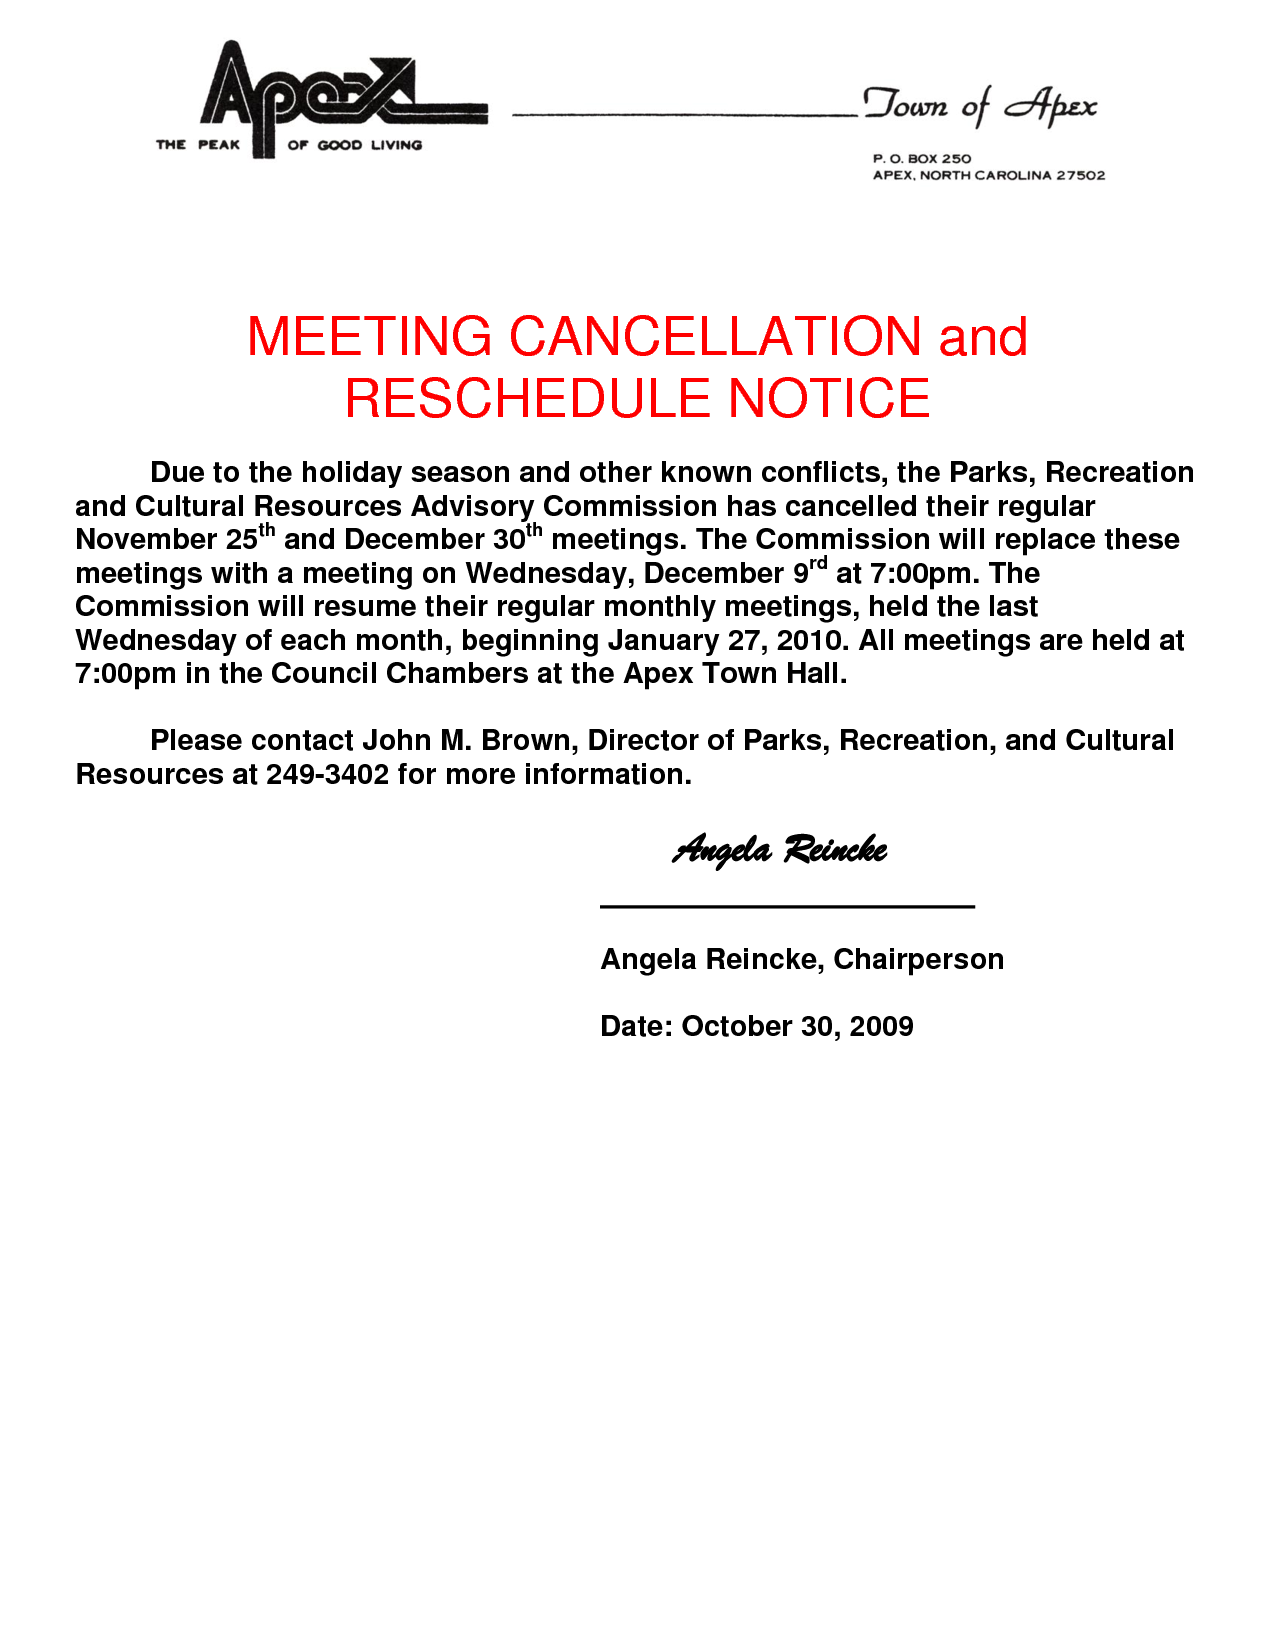 Cancellation Notice Template   Invitation Templates   Cancellation Notice  Form